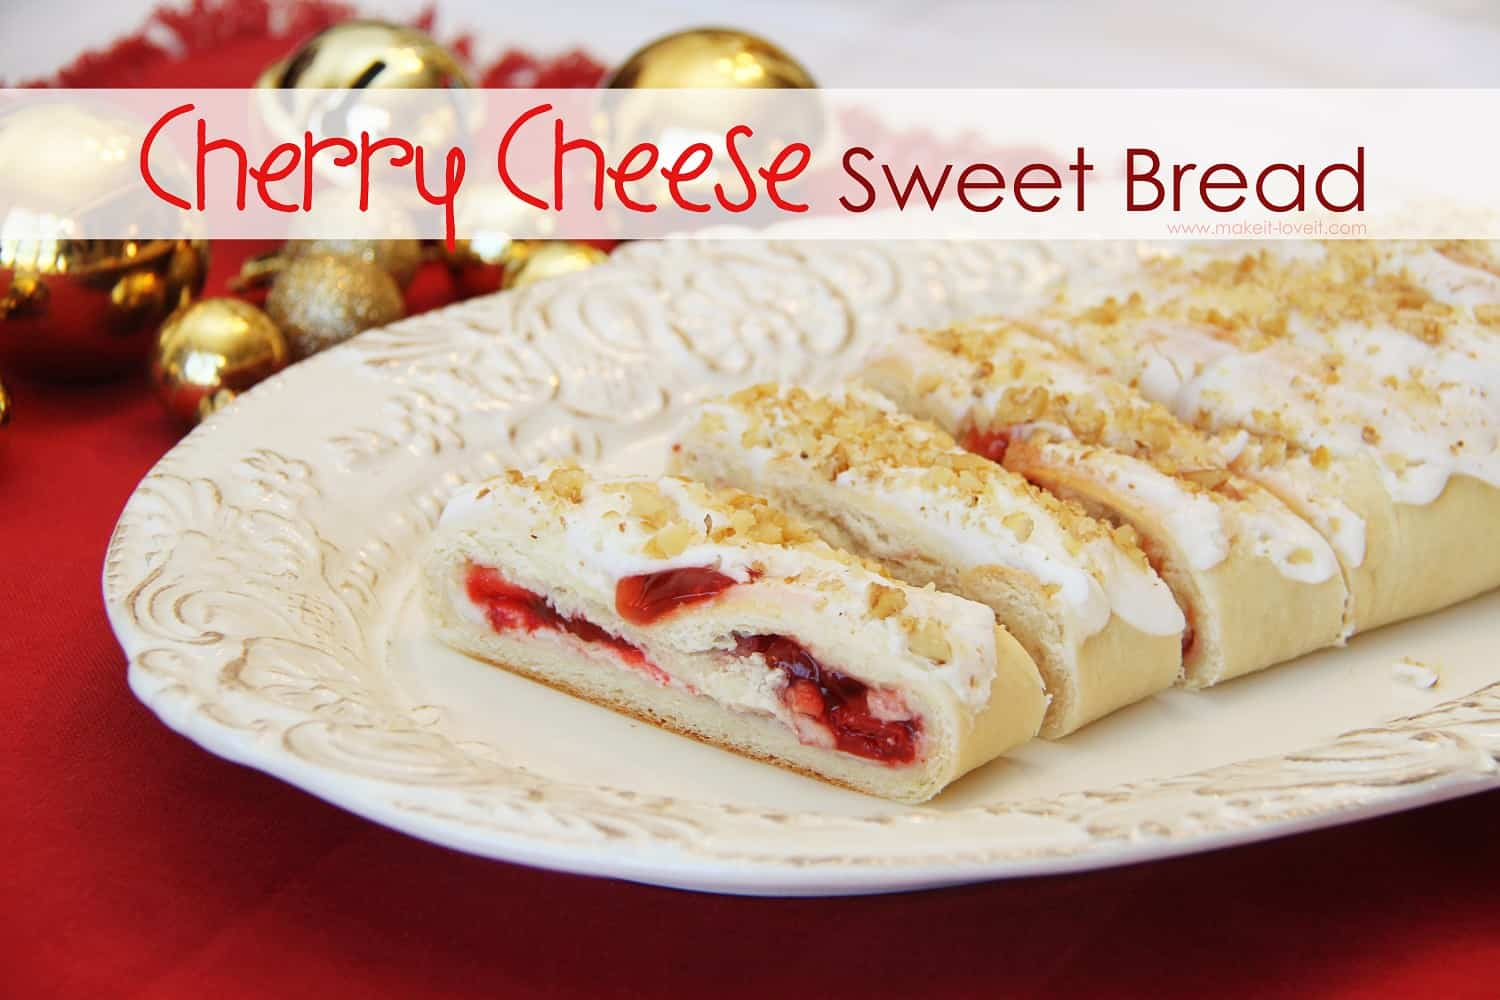 Cherry cheese sweet bread